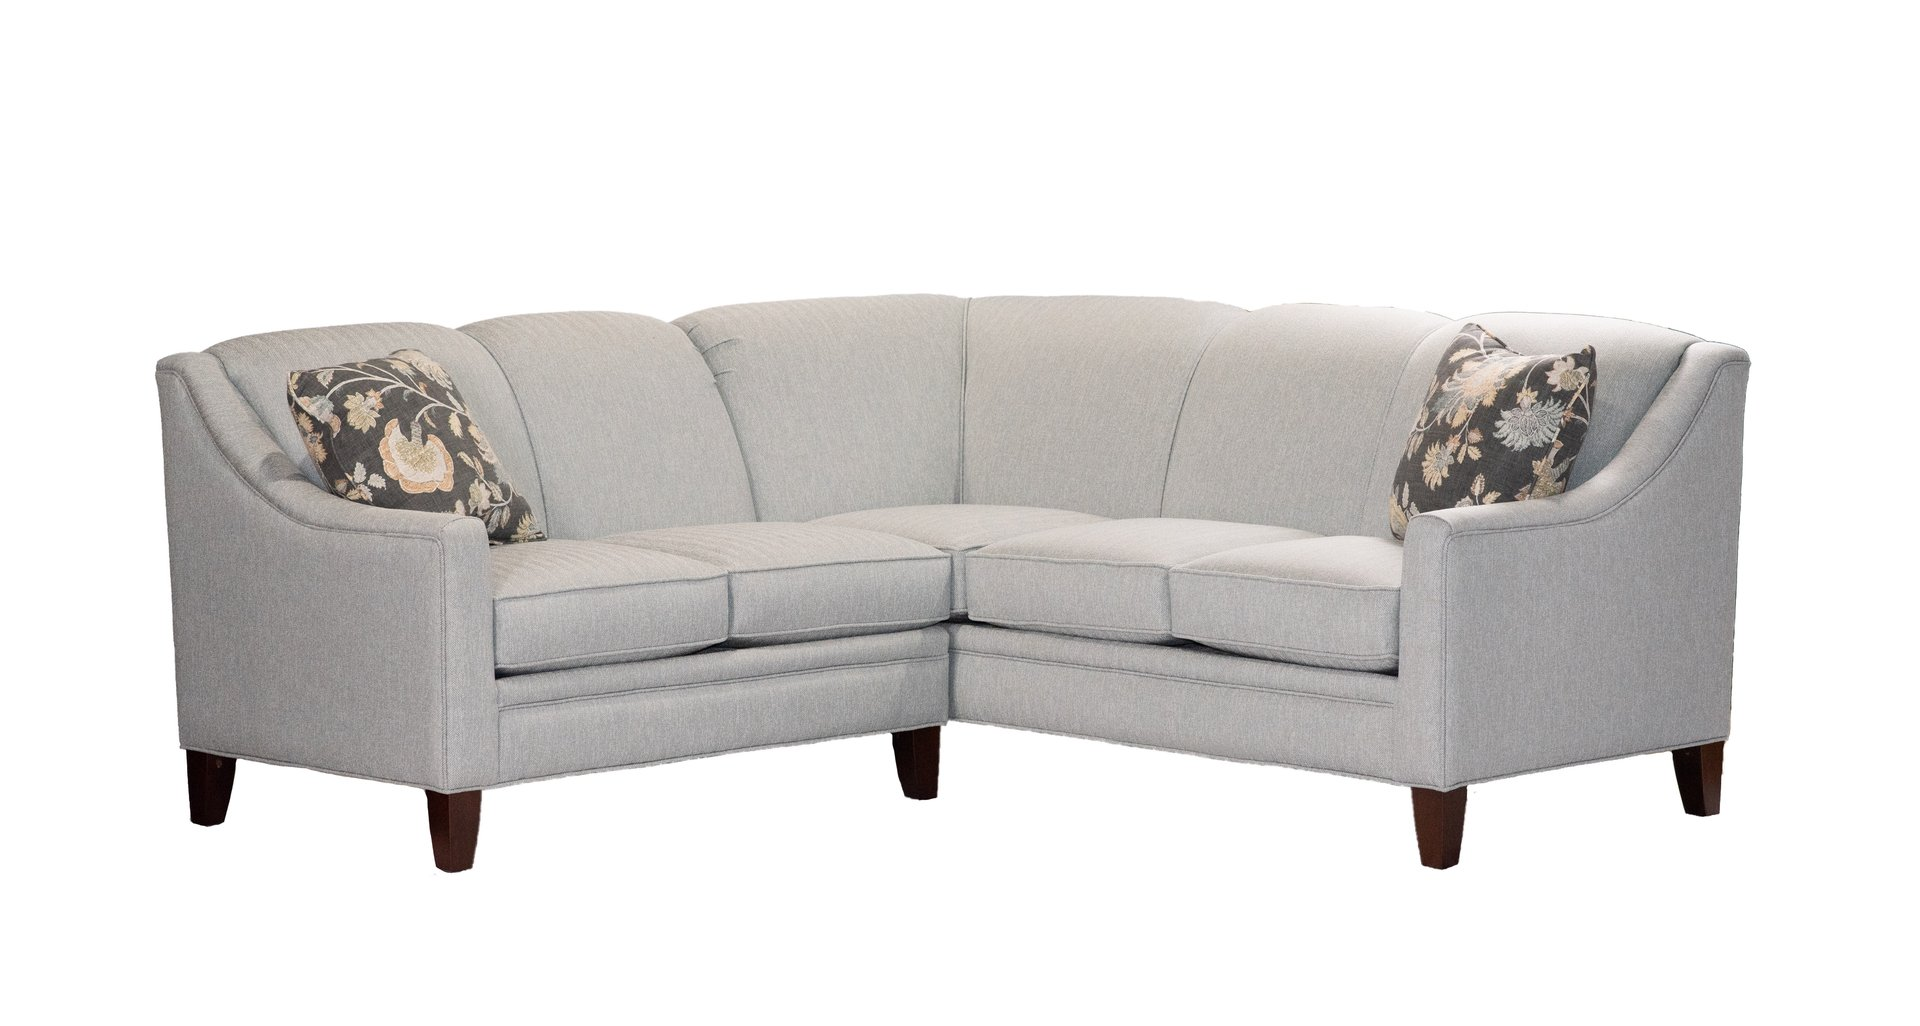 1960 Bex Sectional